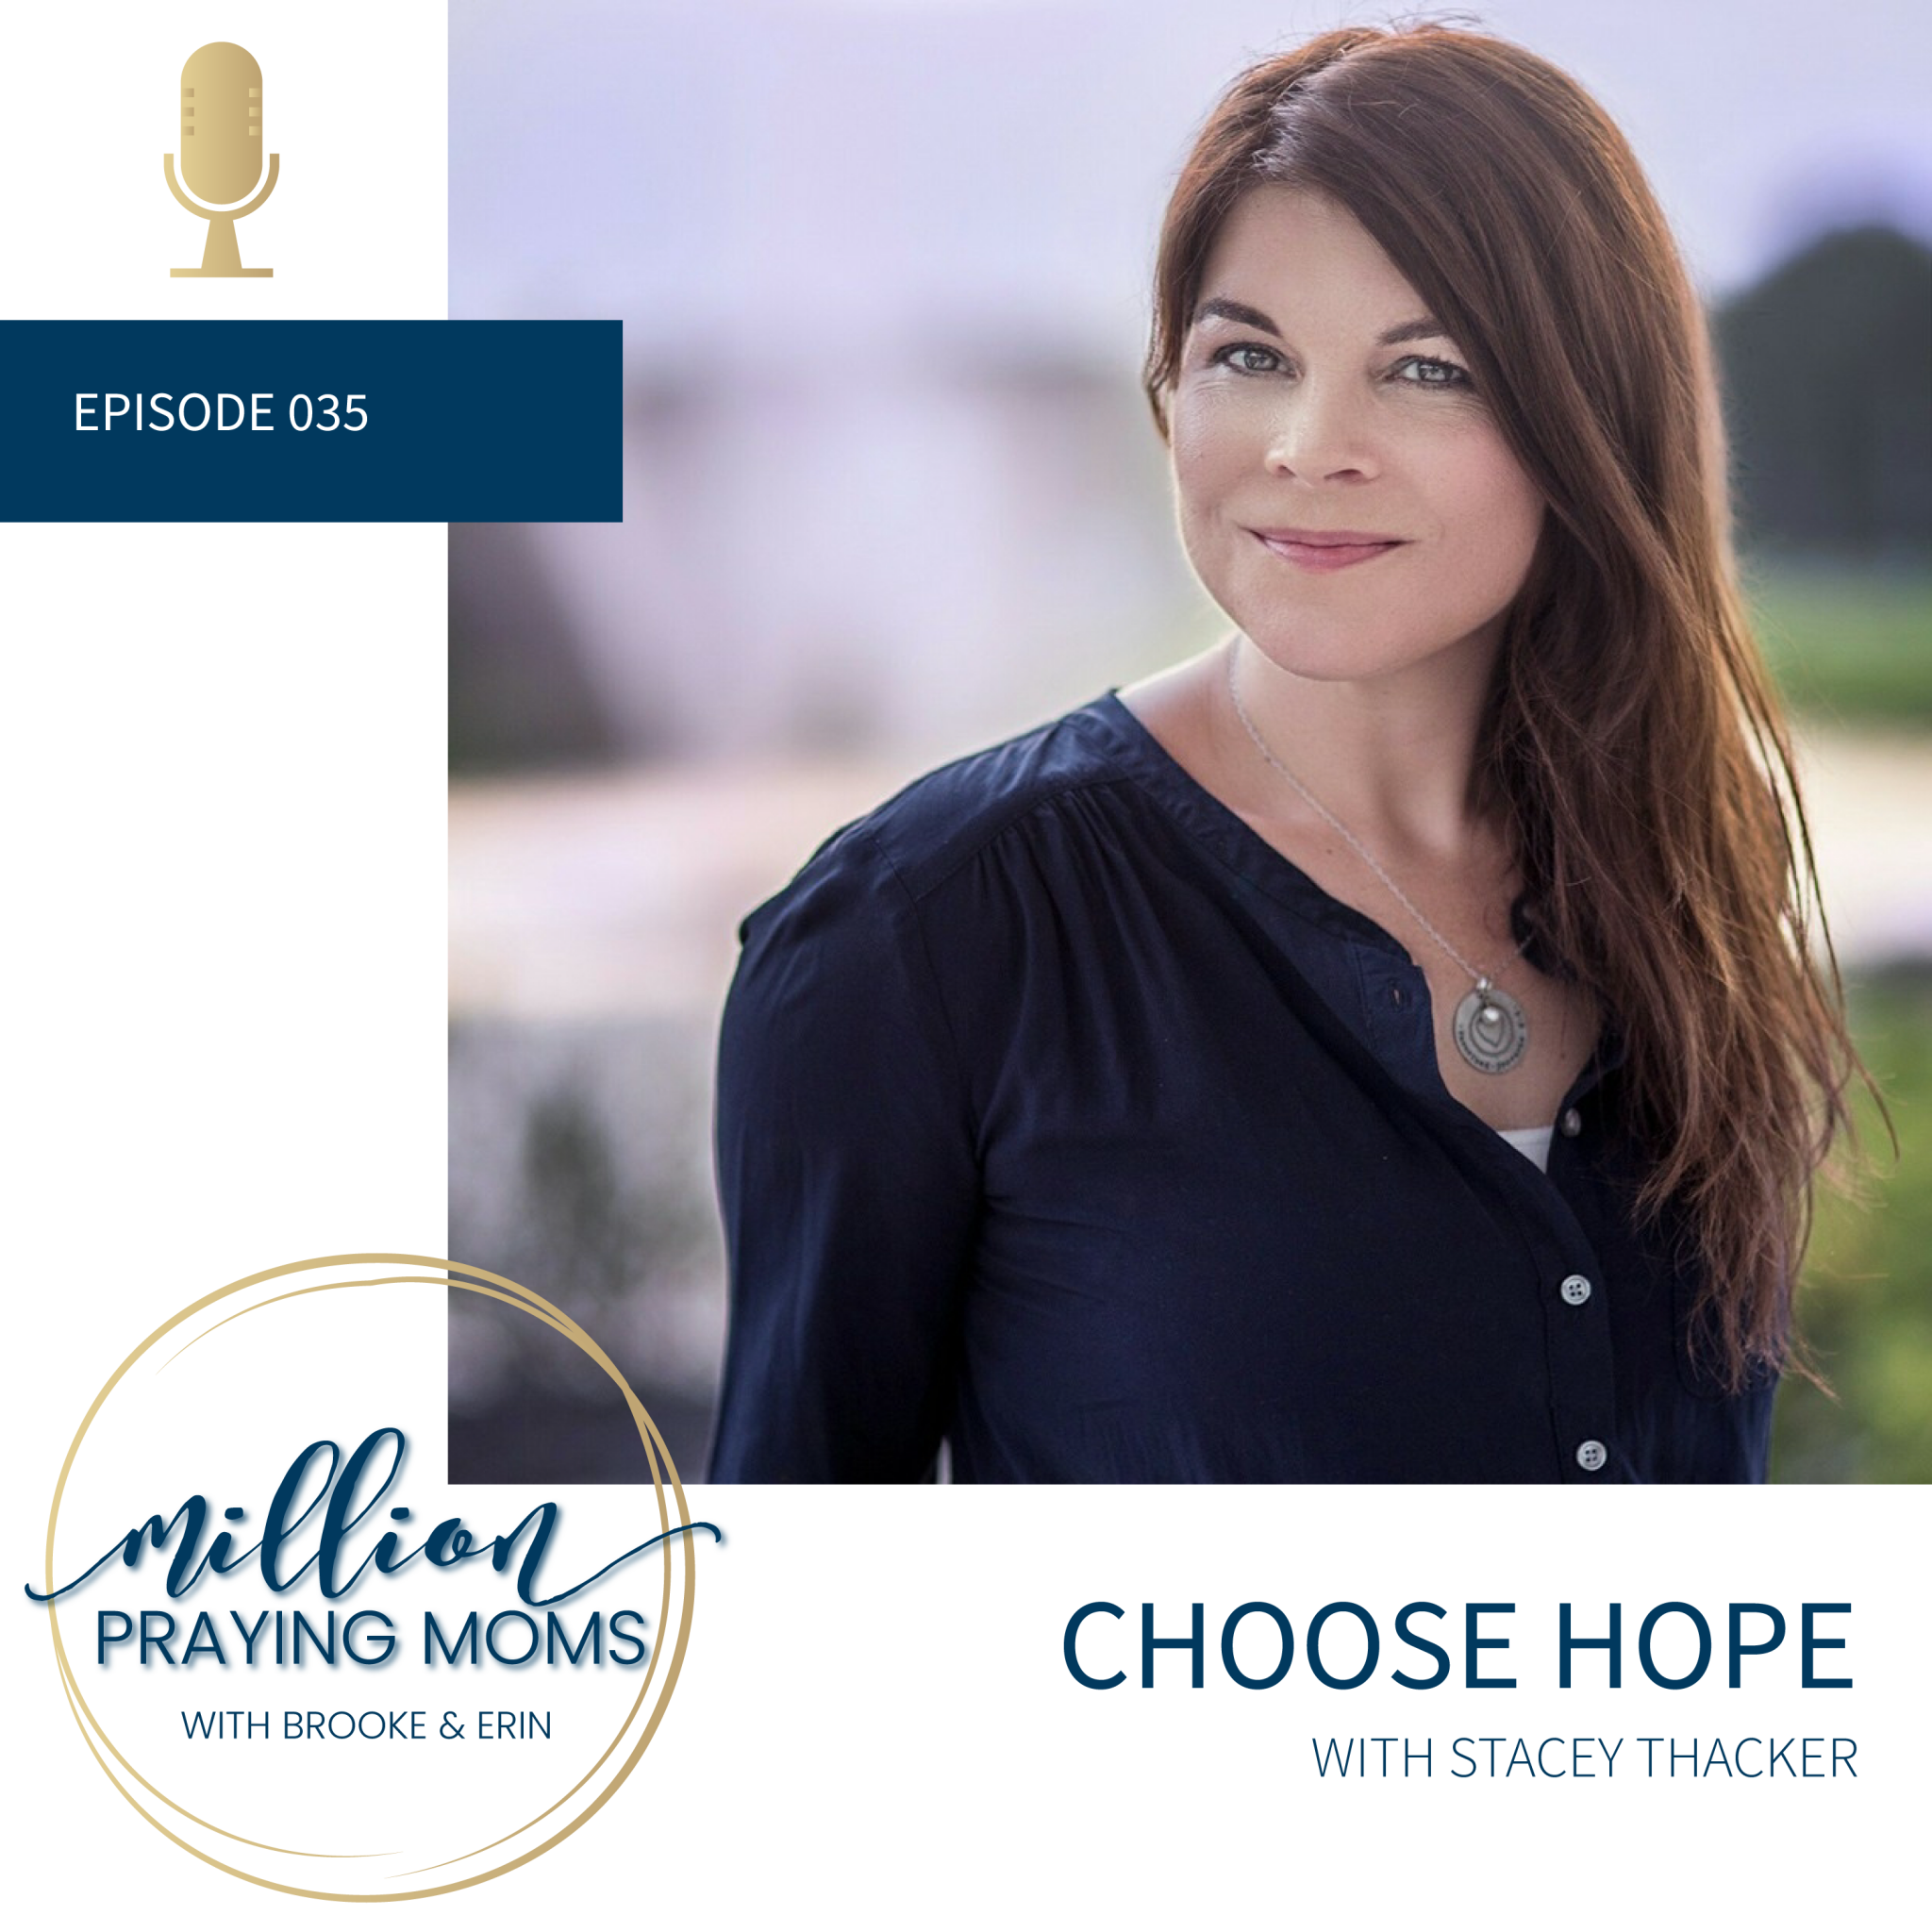 #035: How to Choose Hope (with Stacey Thacker)